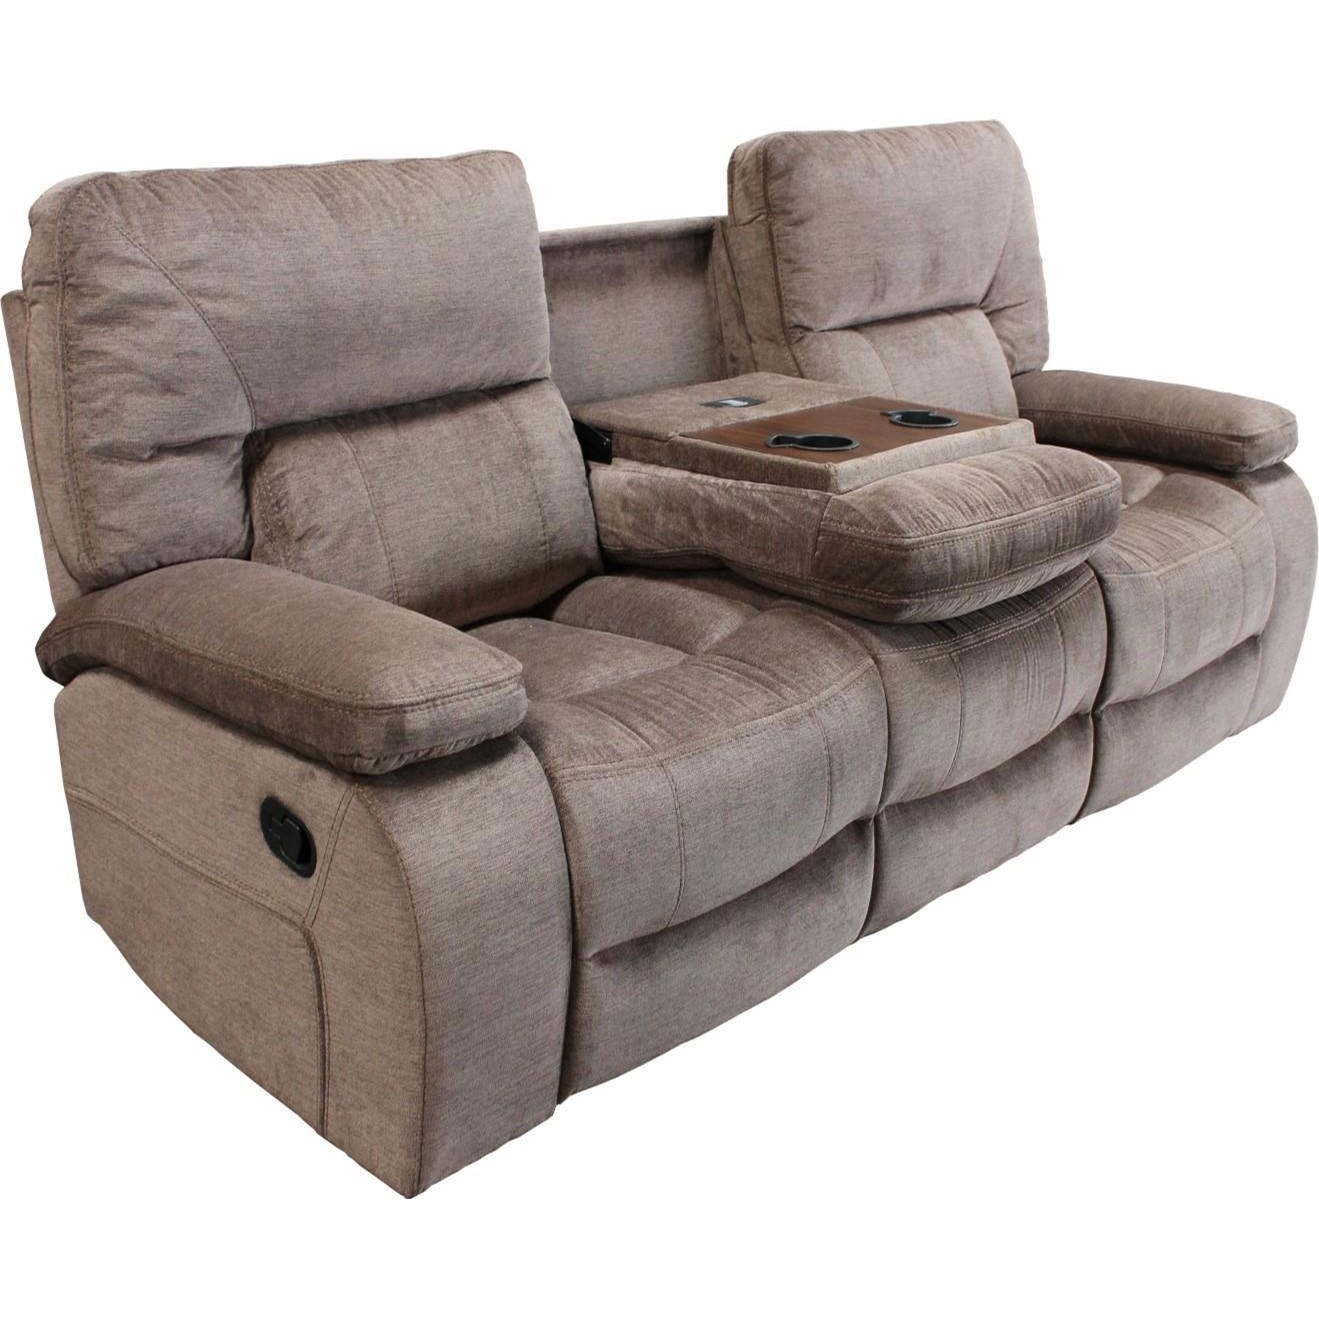 Parker Living Chapman Dual Reclining Sofa with Drop Down Console - Item Number: MCHA-834-KON